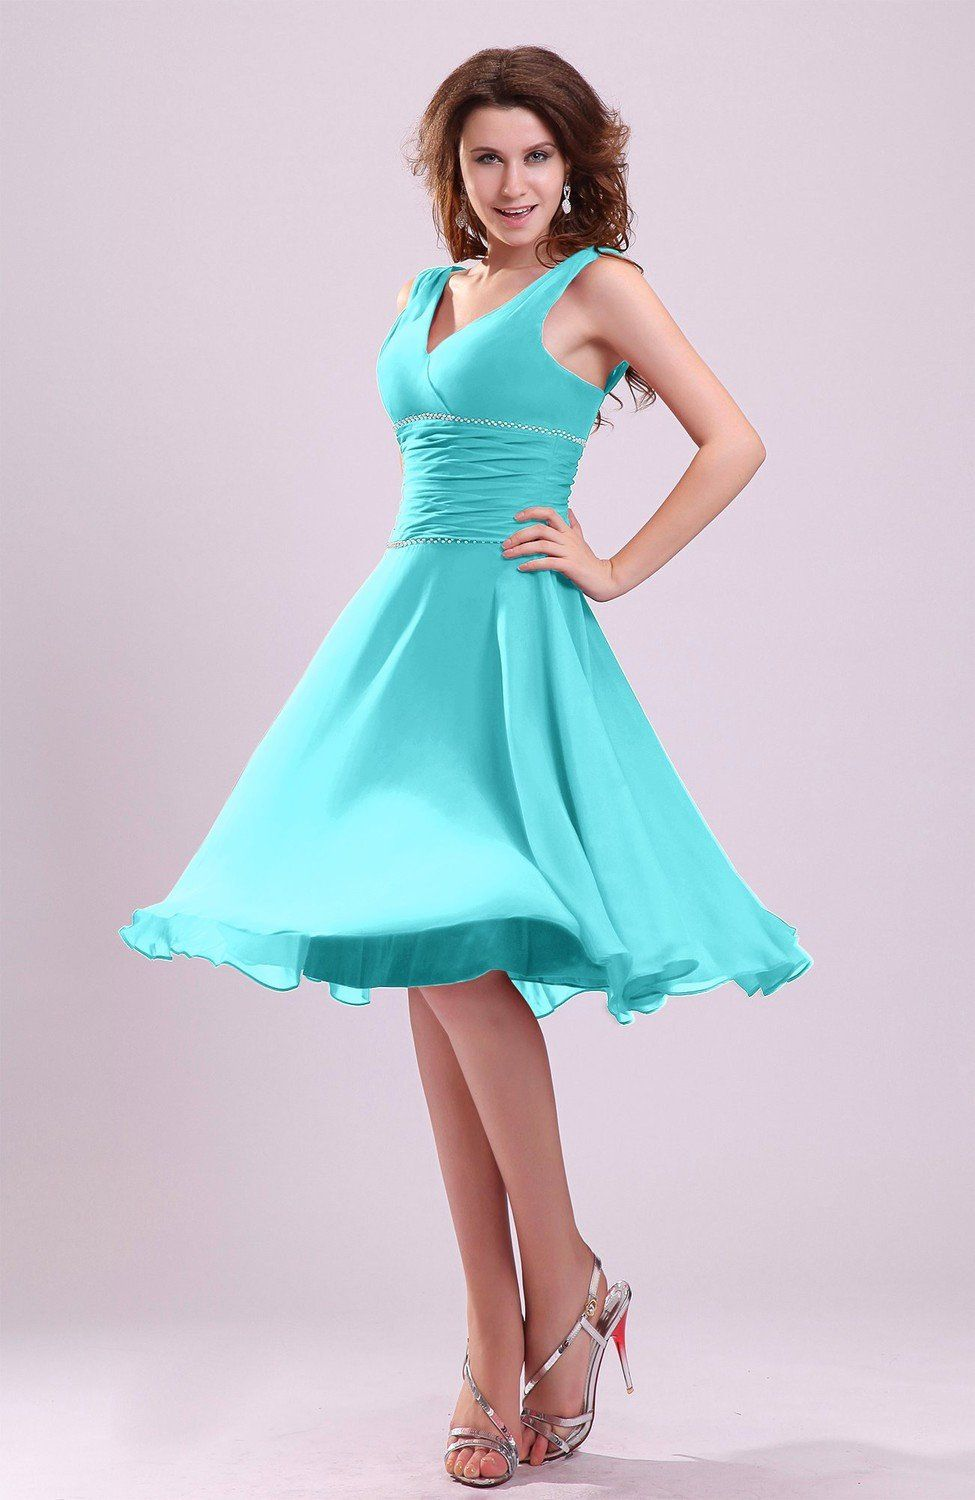 Turquoise Bridesmaid Dress - Cute A-line Sleeveless Chiffon Knee ...